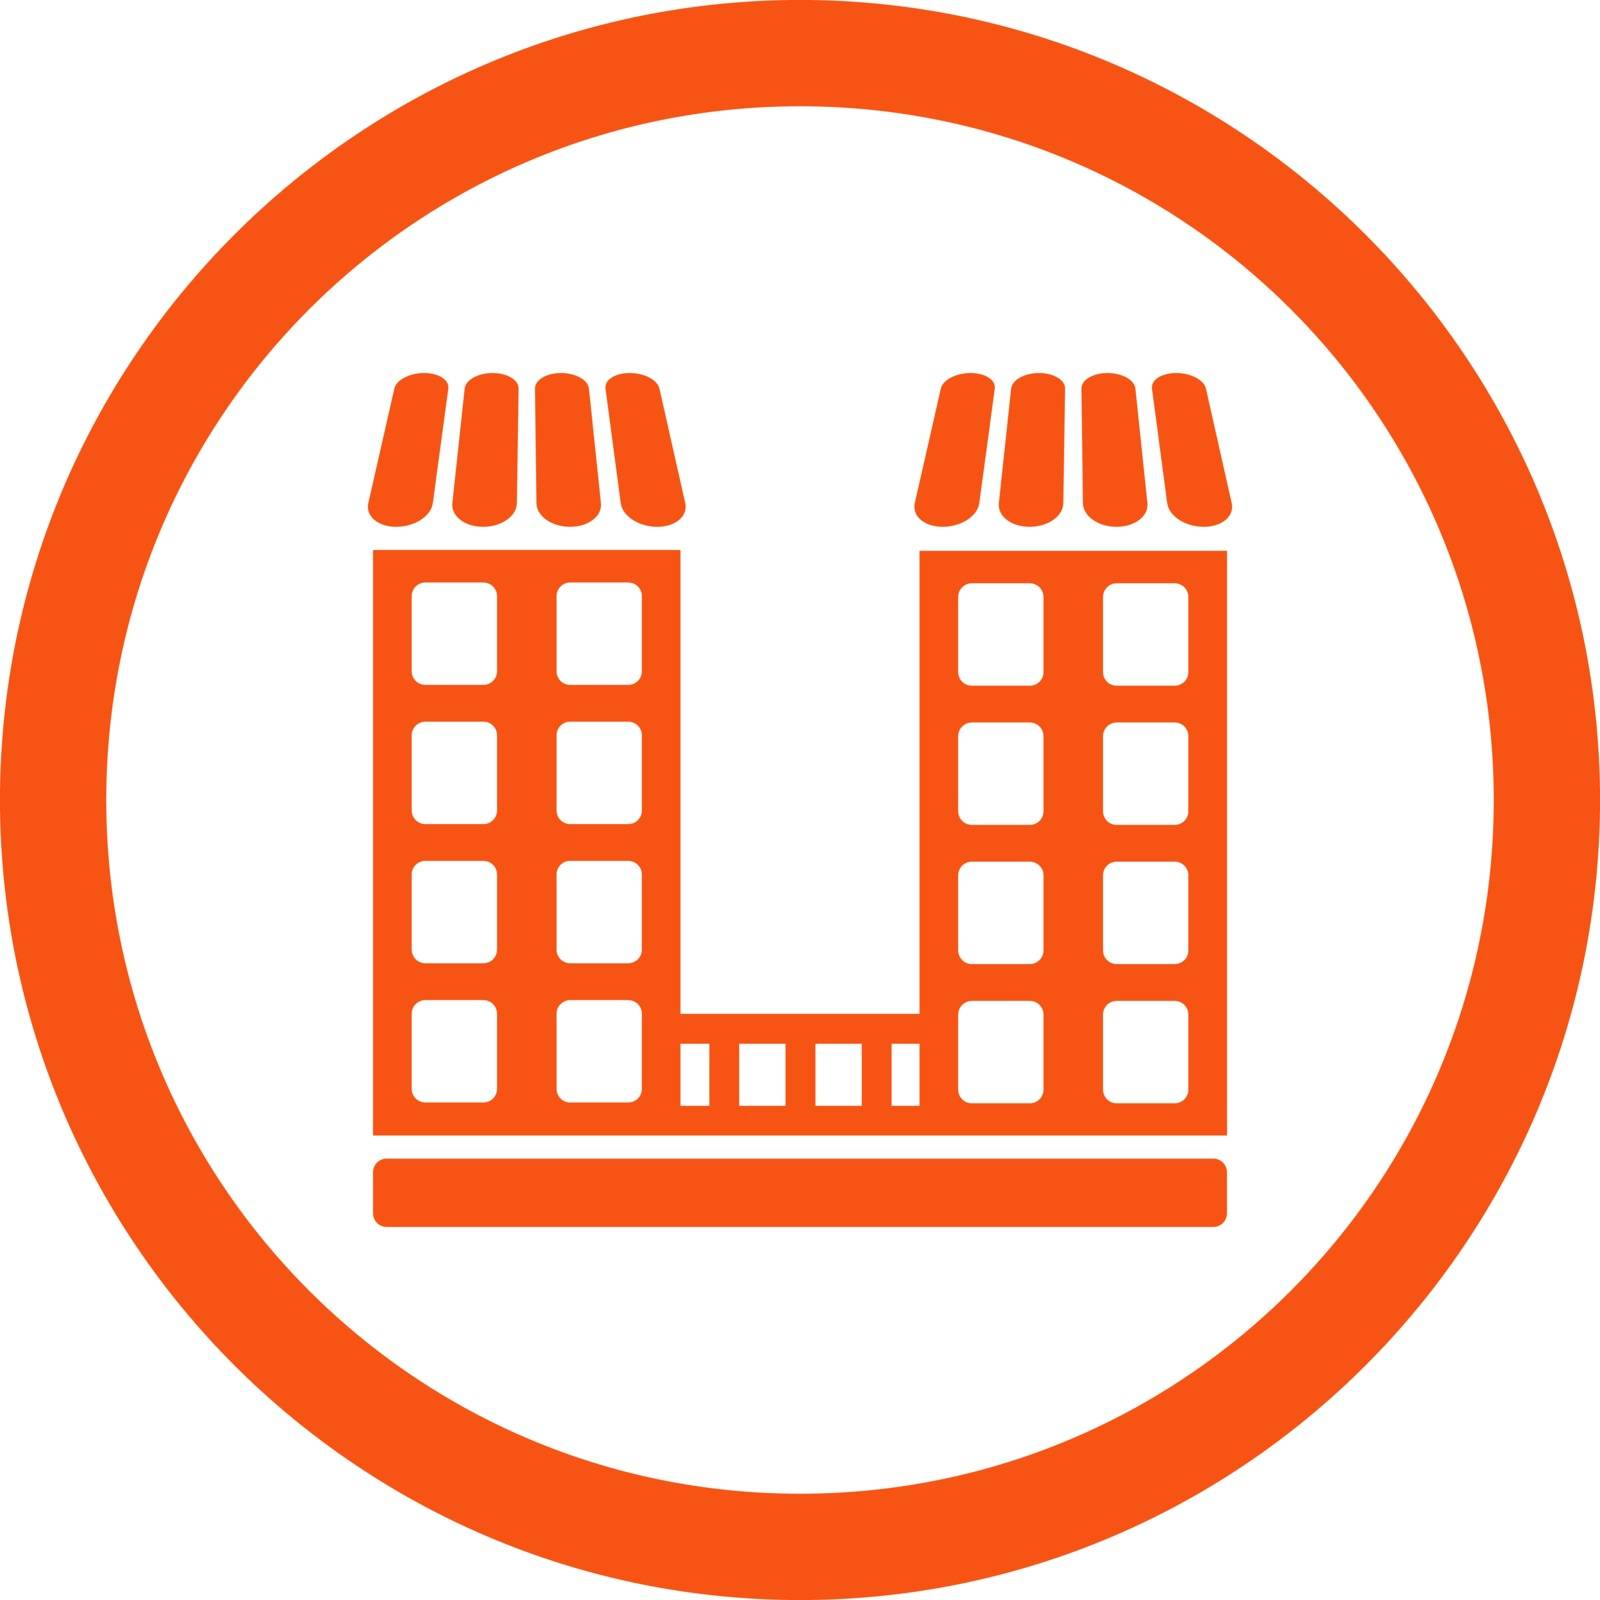 Company vector icon. This flat rounded symbol uses orange color and isolated on a white background.